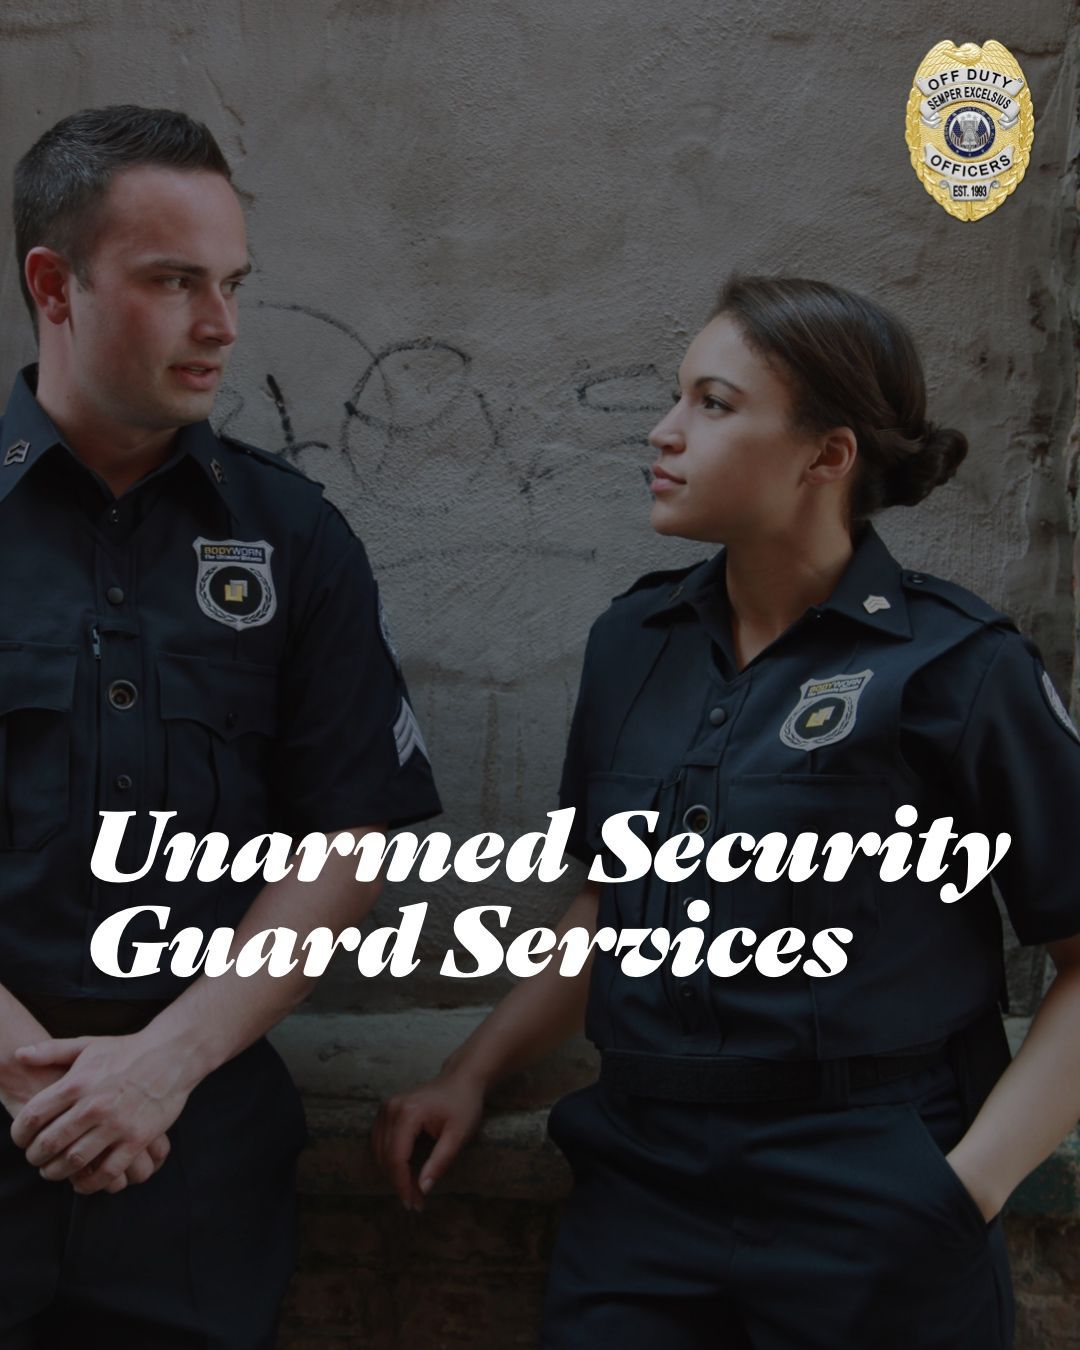 Are you unsure if armed or unarmed security guards are